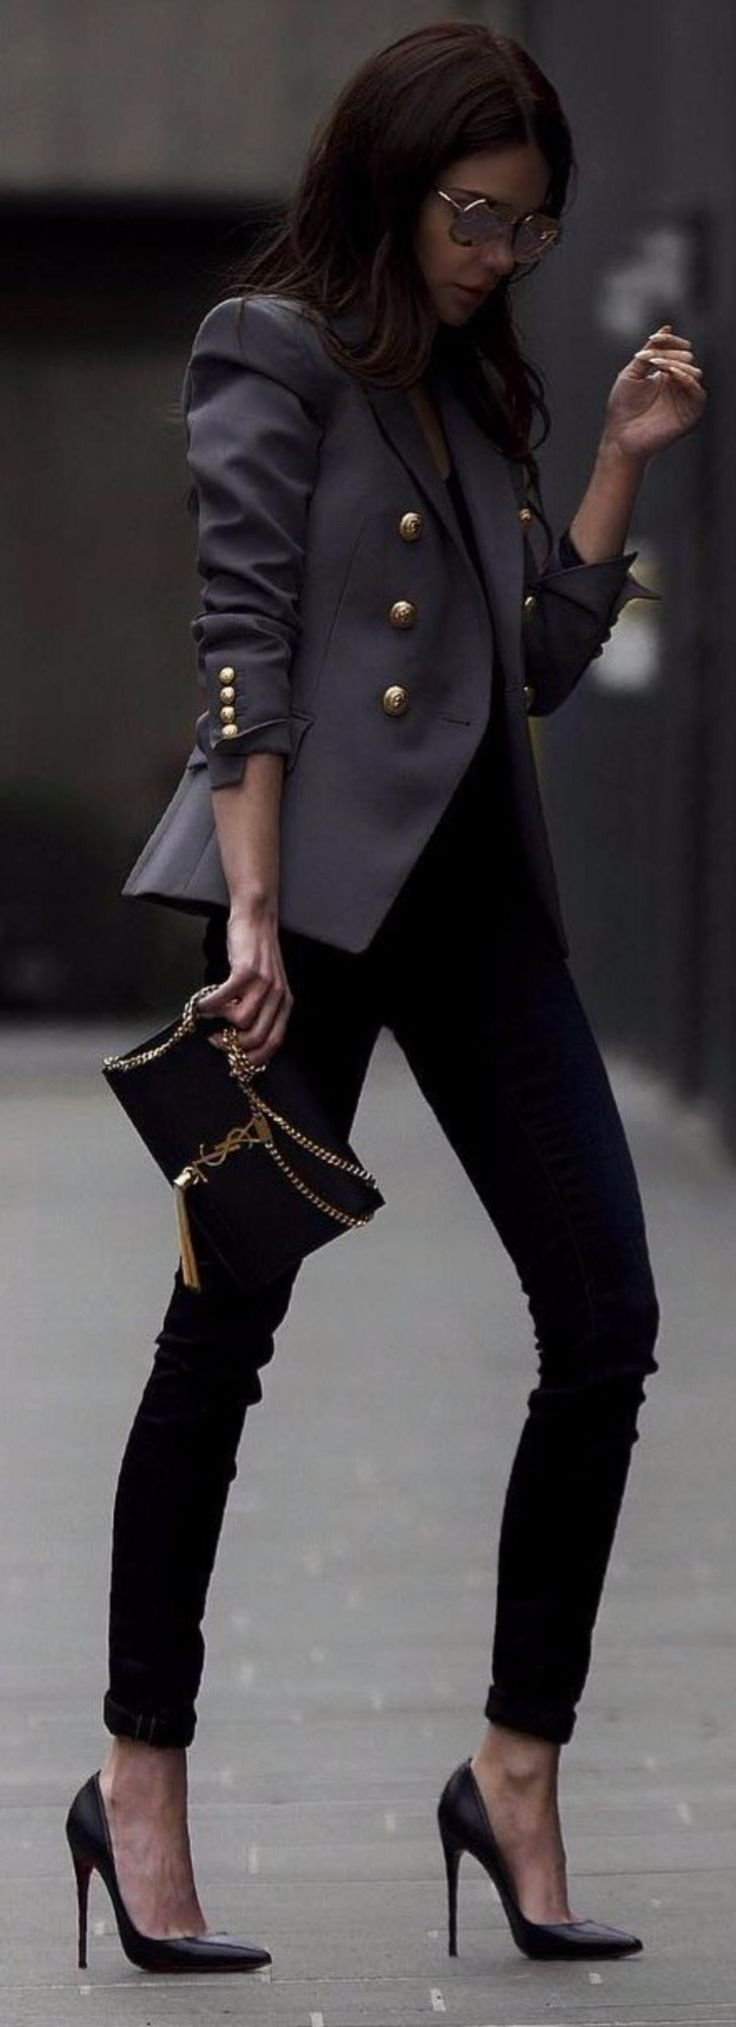 Professional work outfits for women ideas 49 - Fashionetter